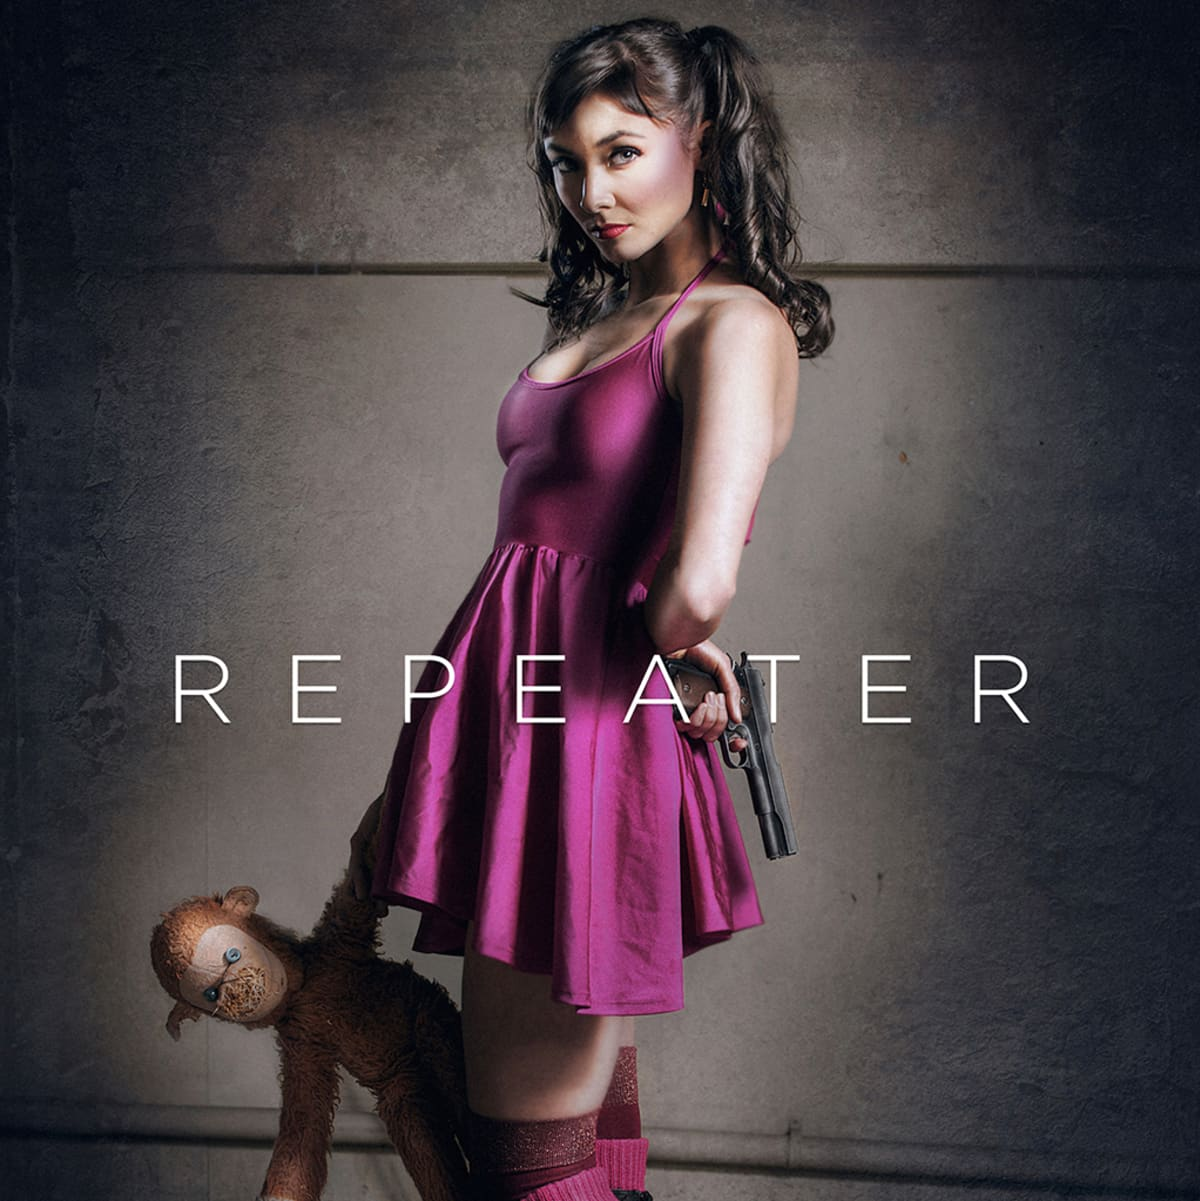 The Repeater